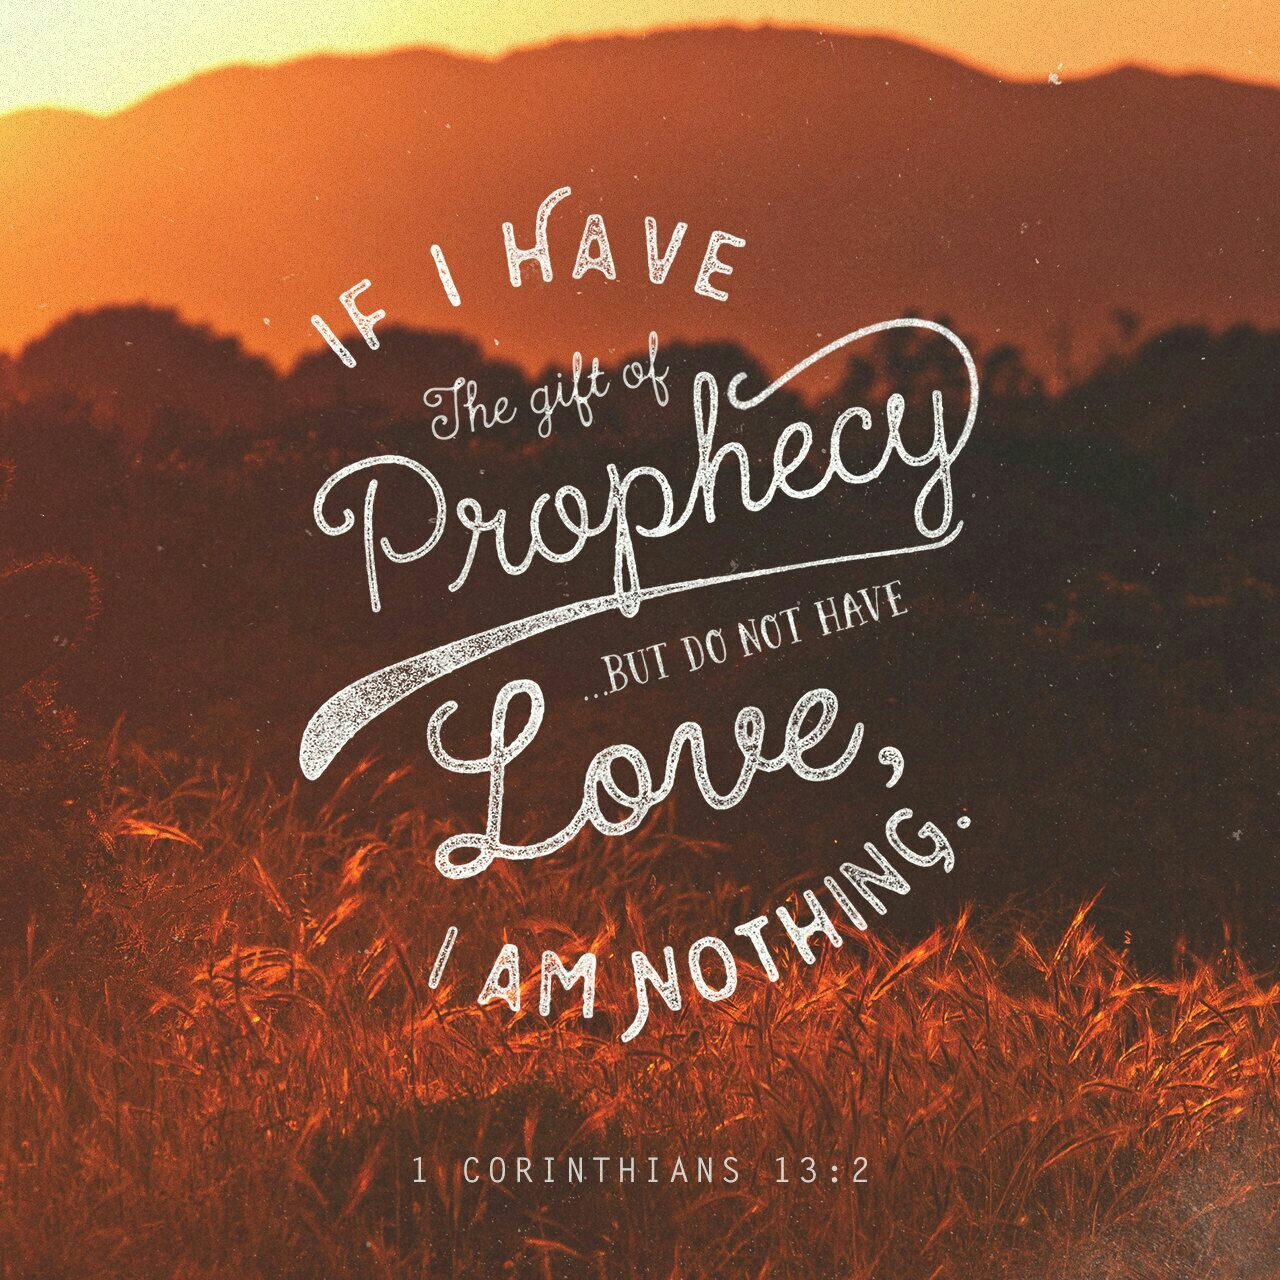 Biblical Love Quotes Pinjoshua Graham On Bible Verses & Quotesfacts  Pinterest